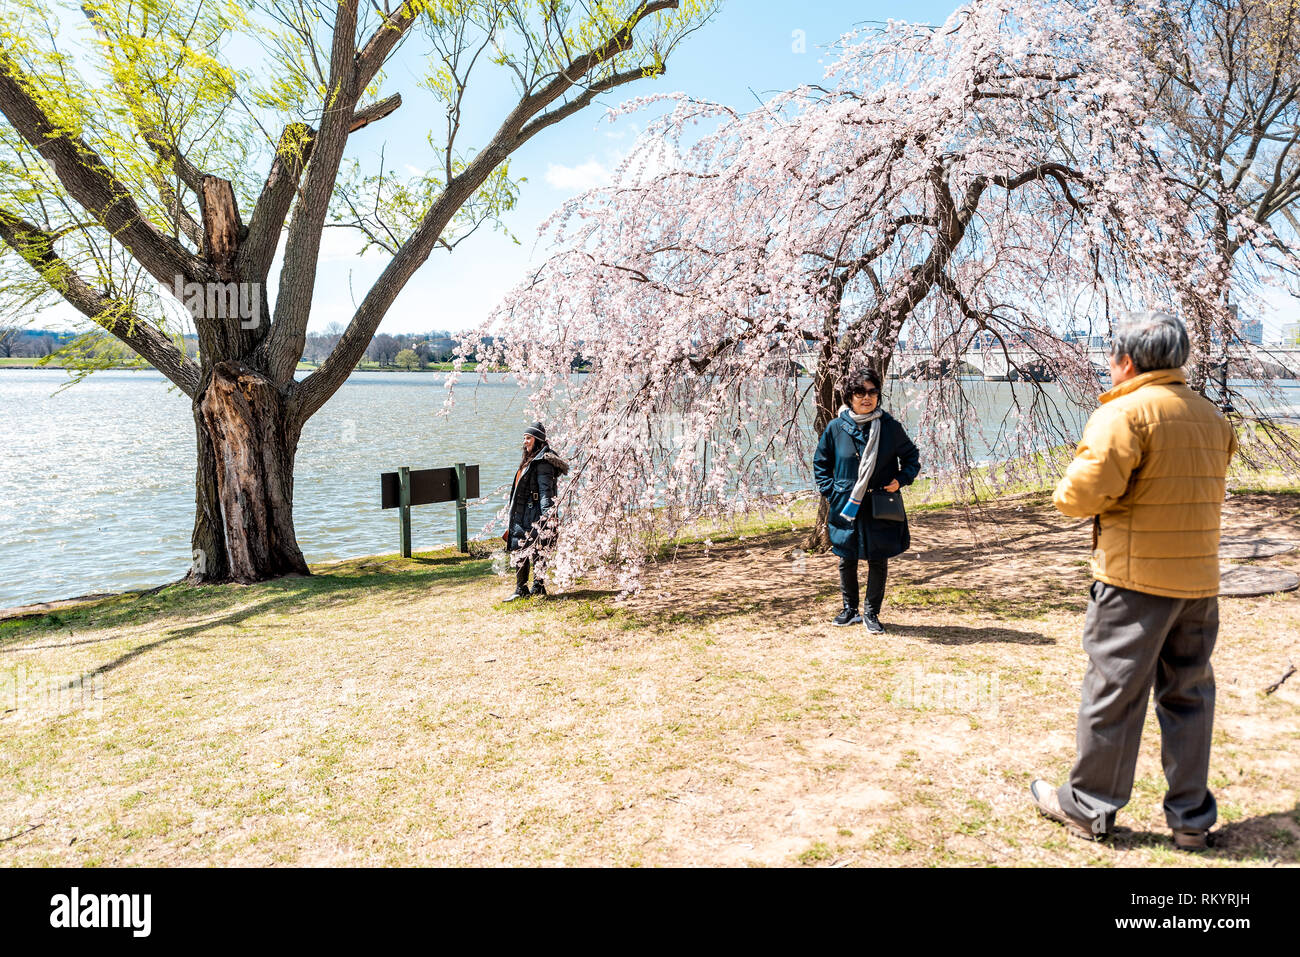 Washington DC, USA - April 5, 2018: Tourists people couple taking pictures by cherry blossom sakura trees in spring with potomac river memorial bridge - Stock Image